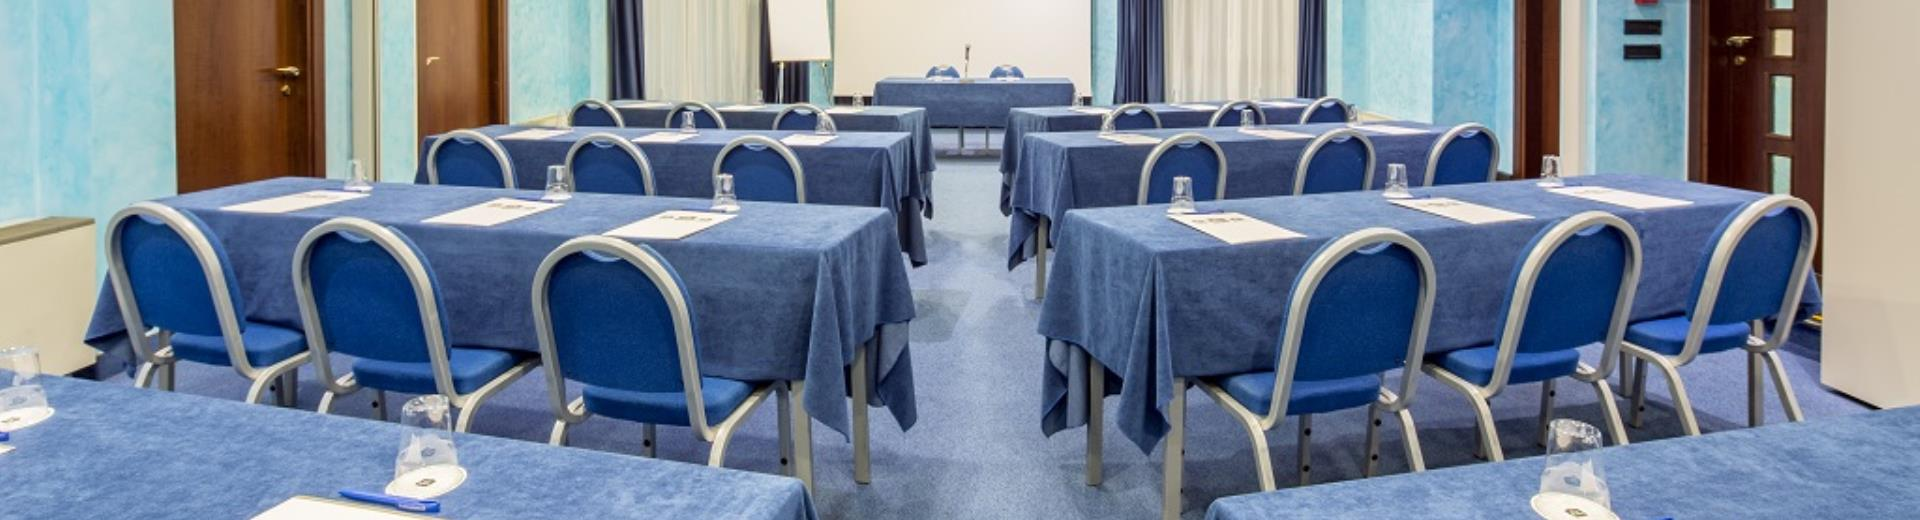 Organize your meeting at the BW Hotel Turismo